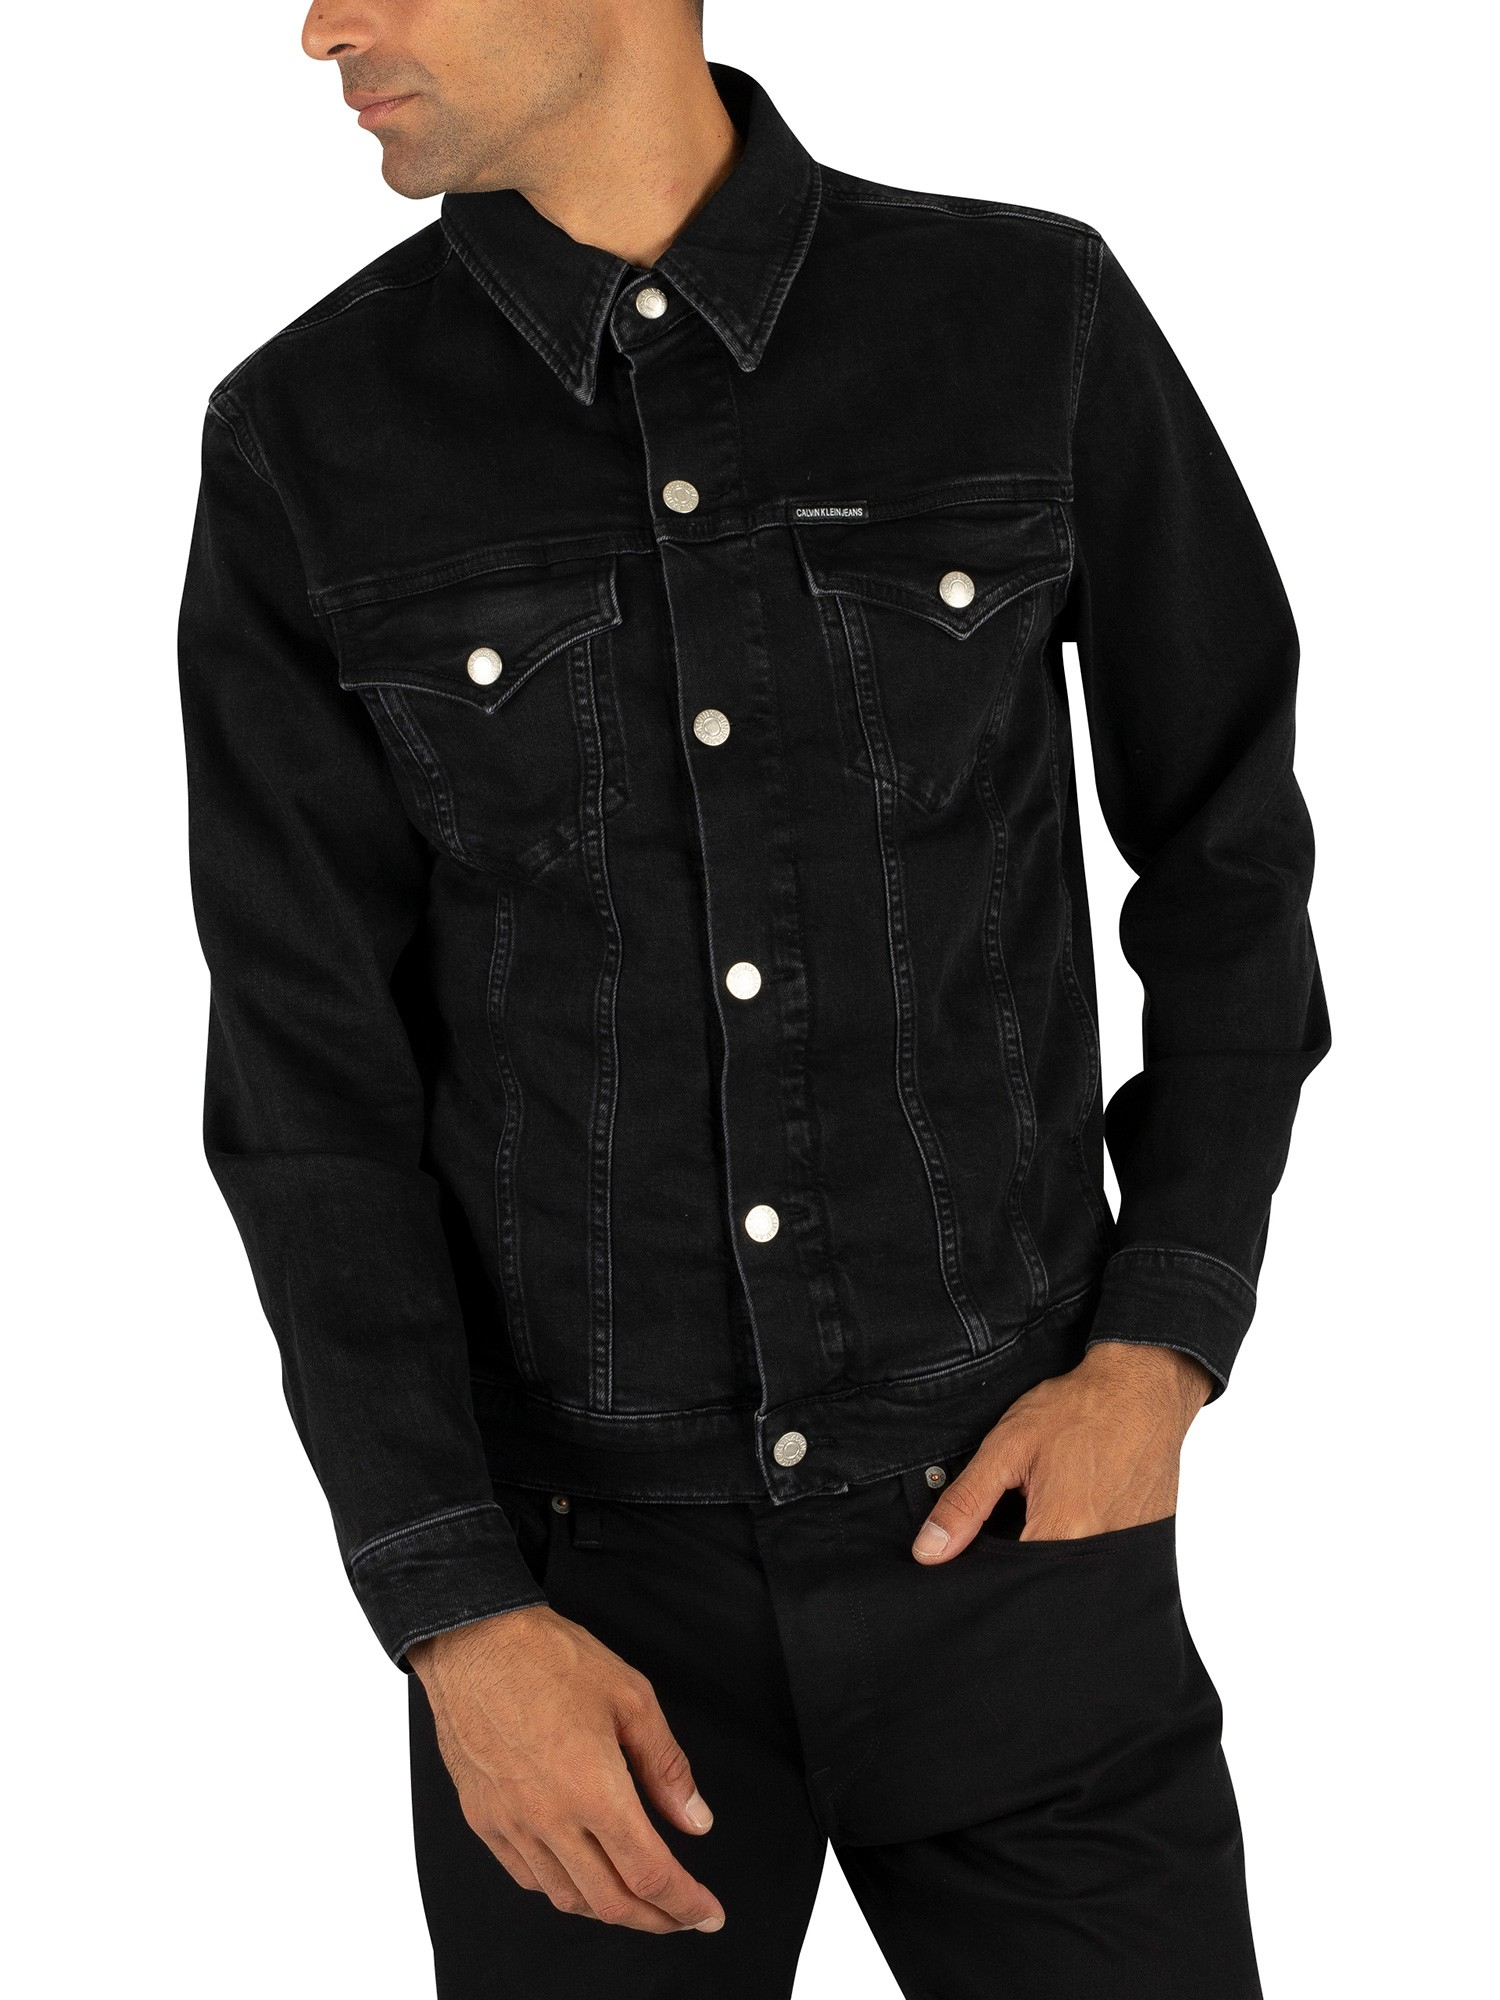 top-rated latest official site to buy Details about Calvin Klein Jeans Men's Foundation Slim Denim Jacket, Black